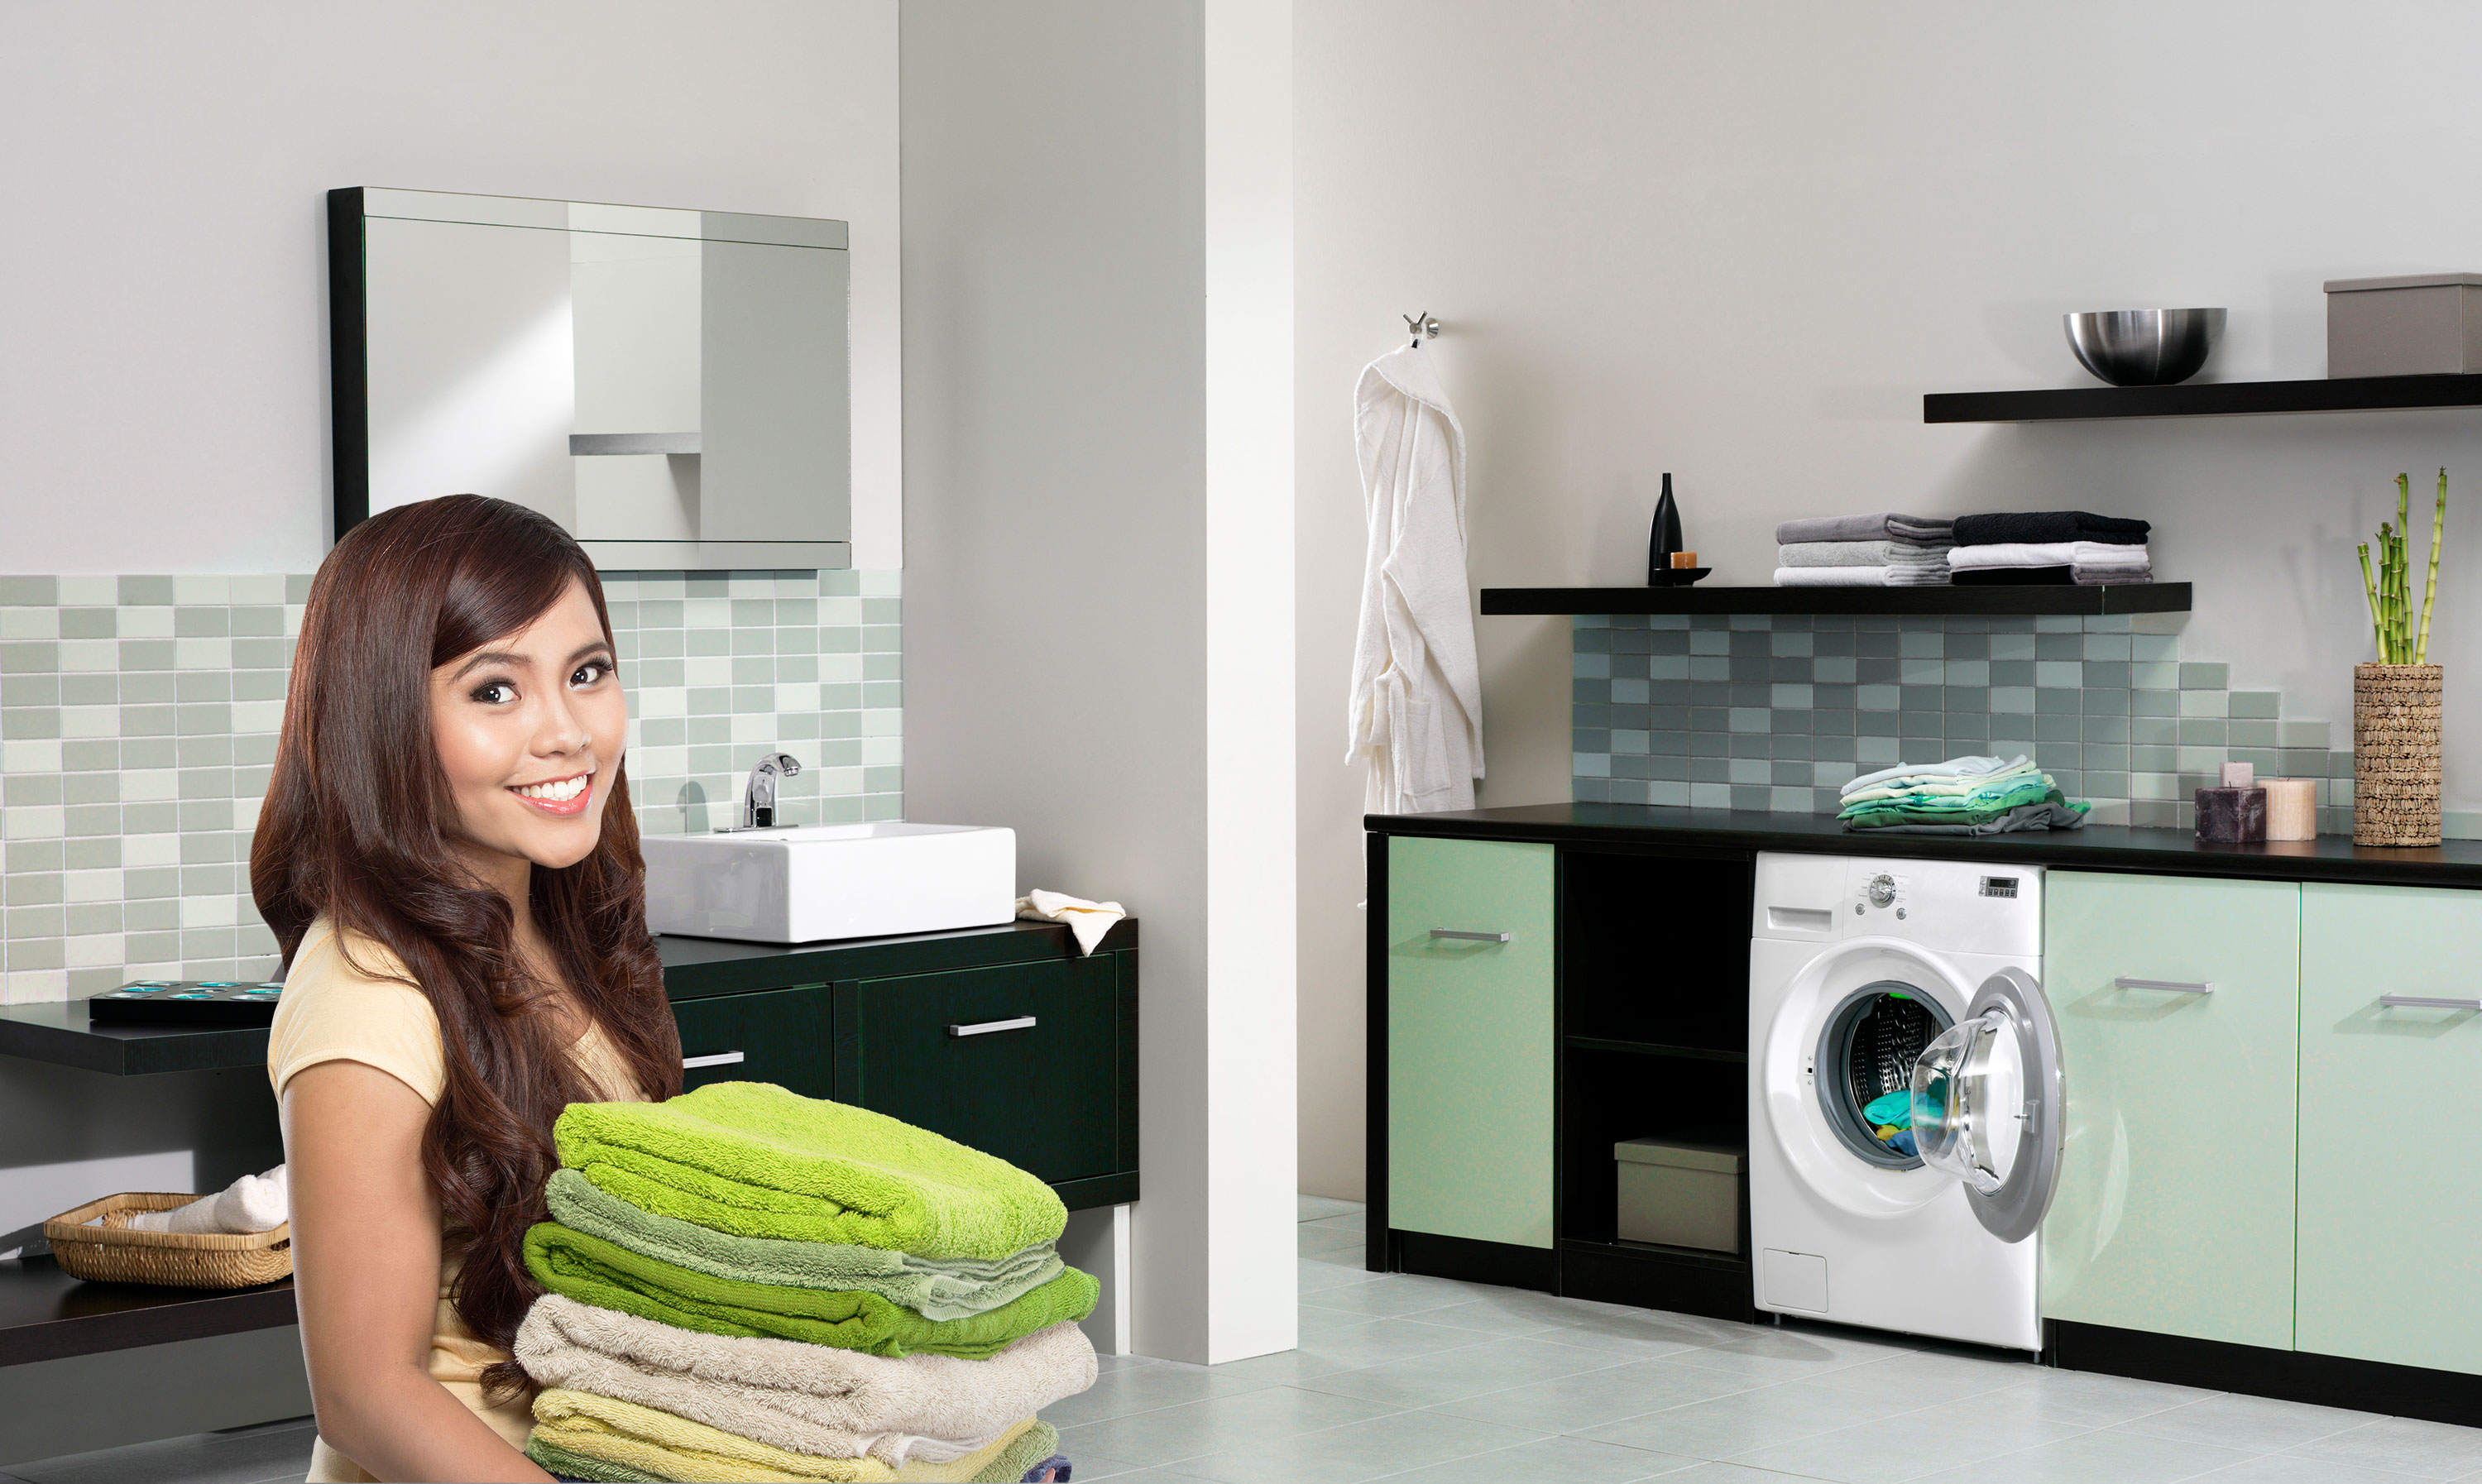 woman with towels in laundry room